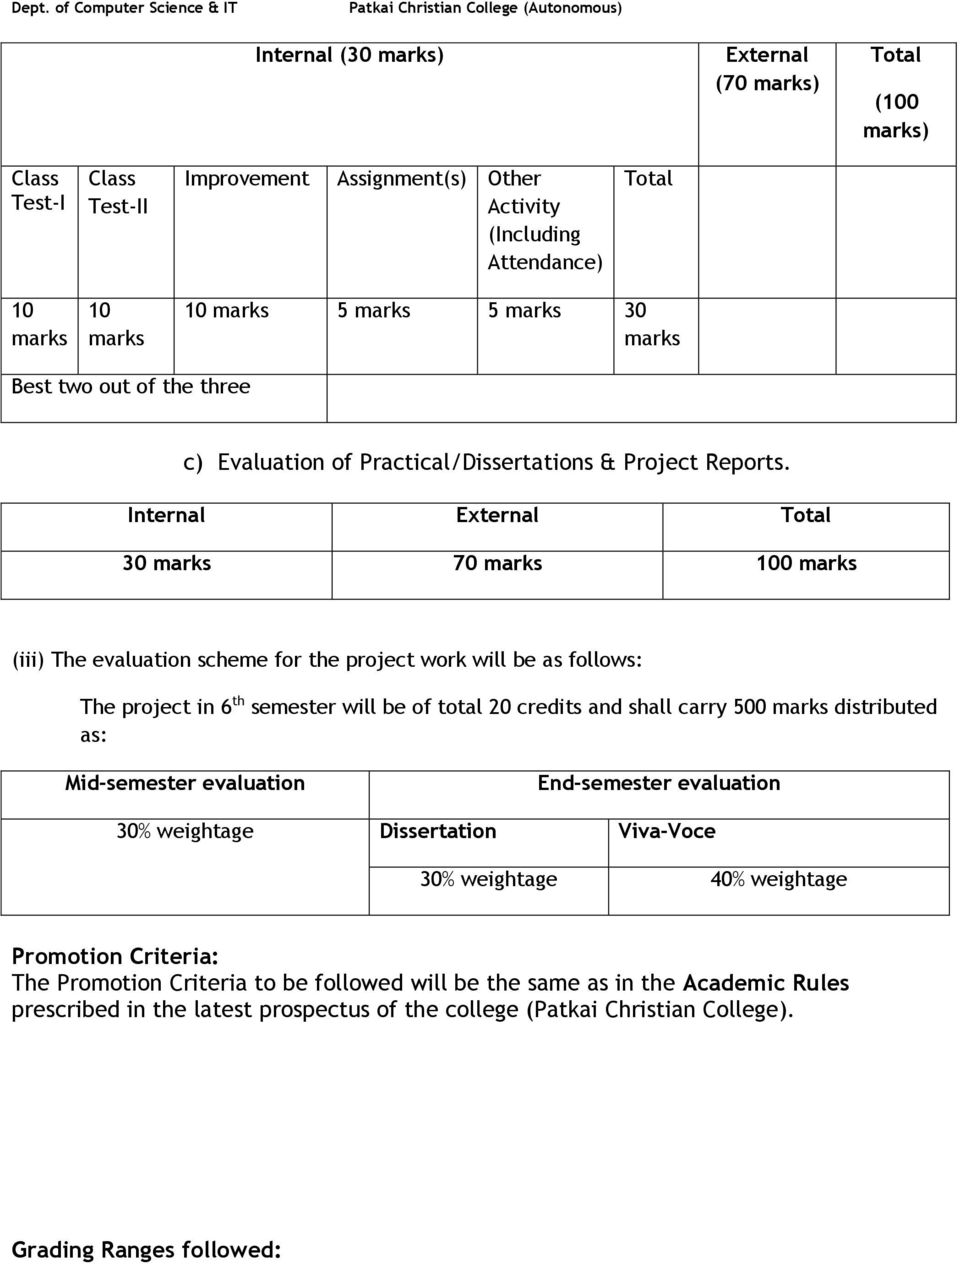 dissertation topics for mca in gtu